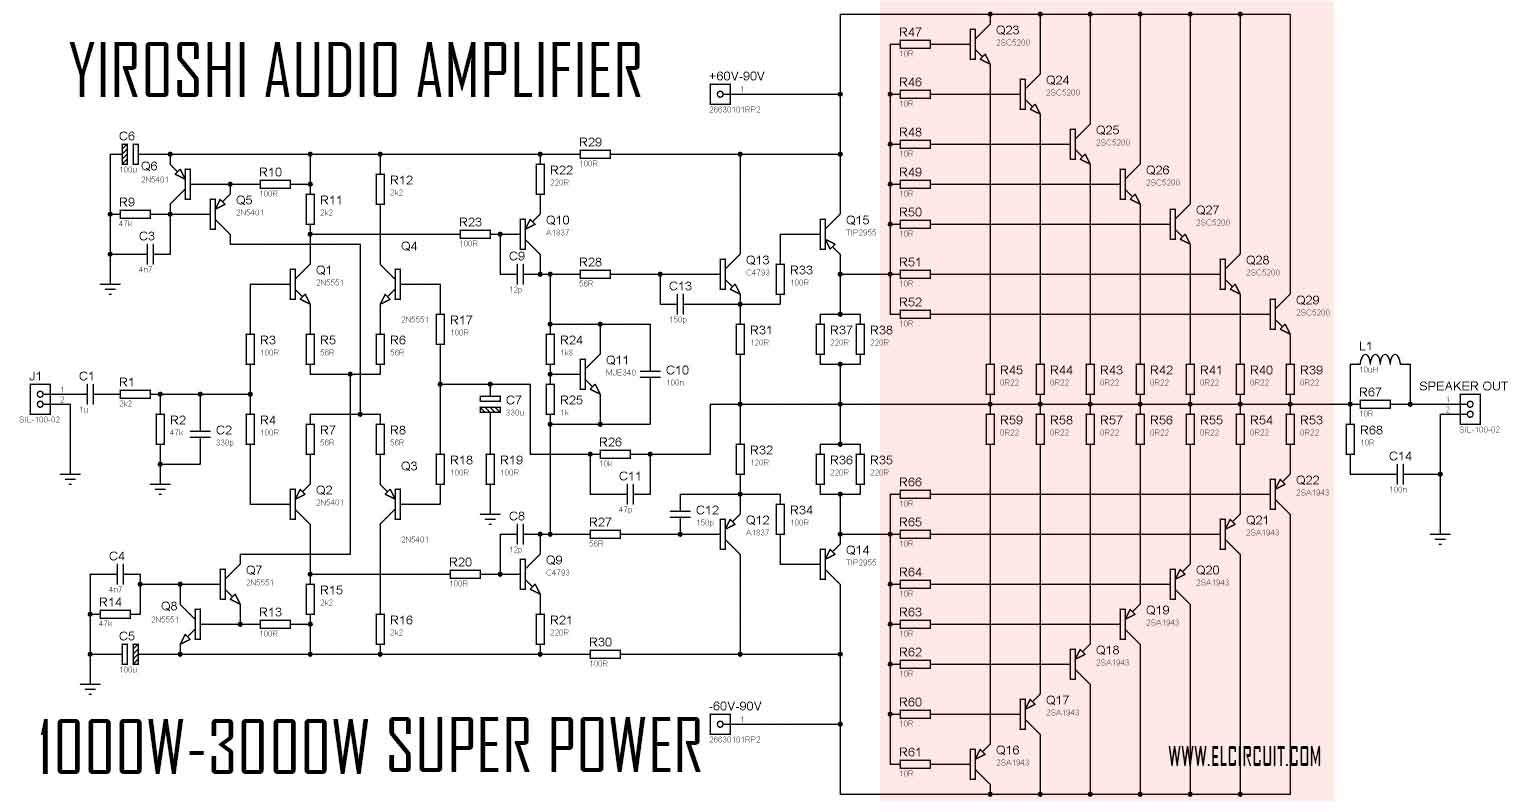 Super Power Amplifier Yiroshi Audio